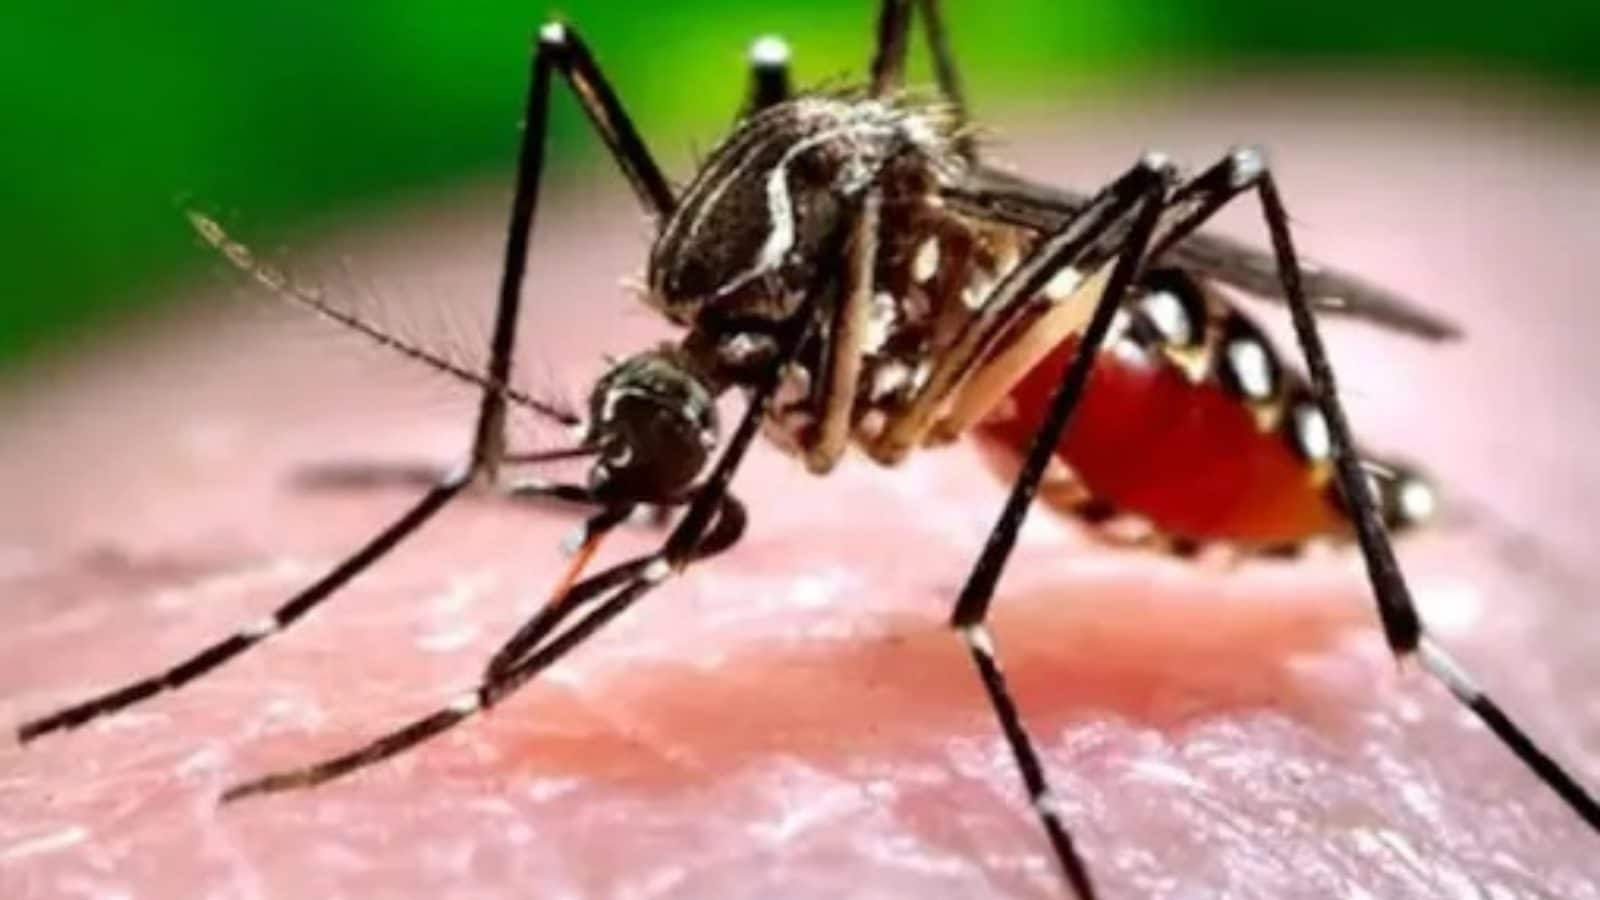 Youth Dies Due to Dengue in Kolkata, Panic Spreads